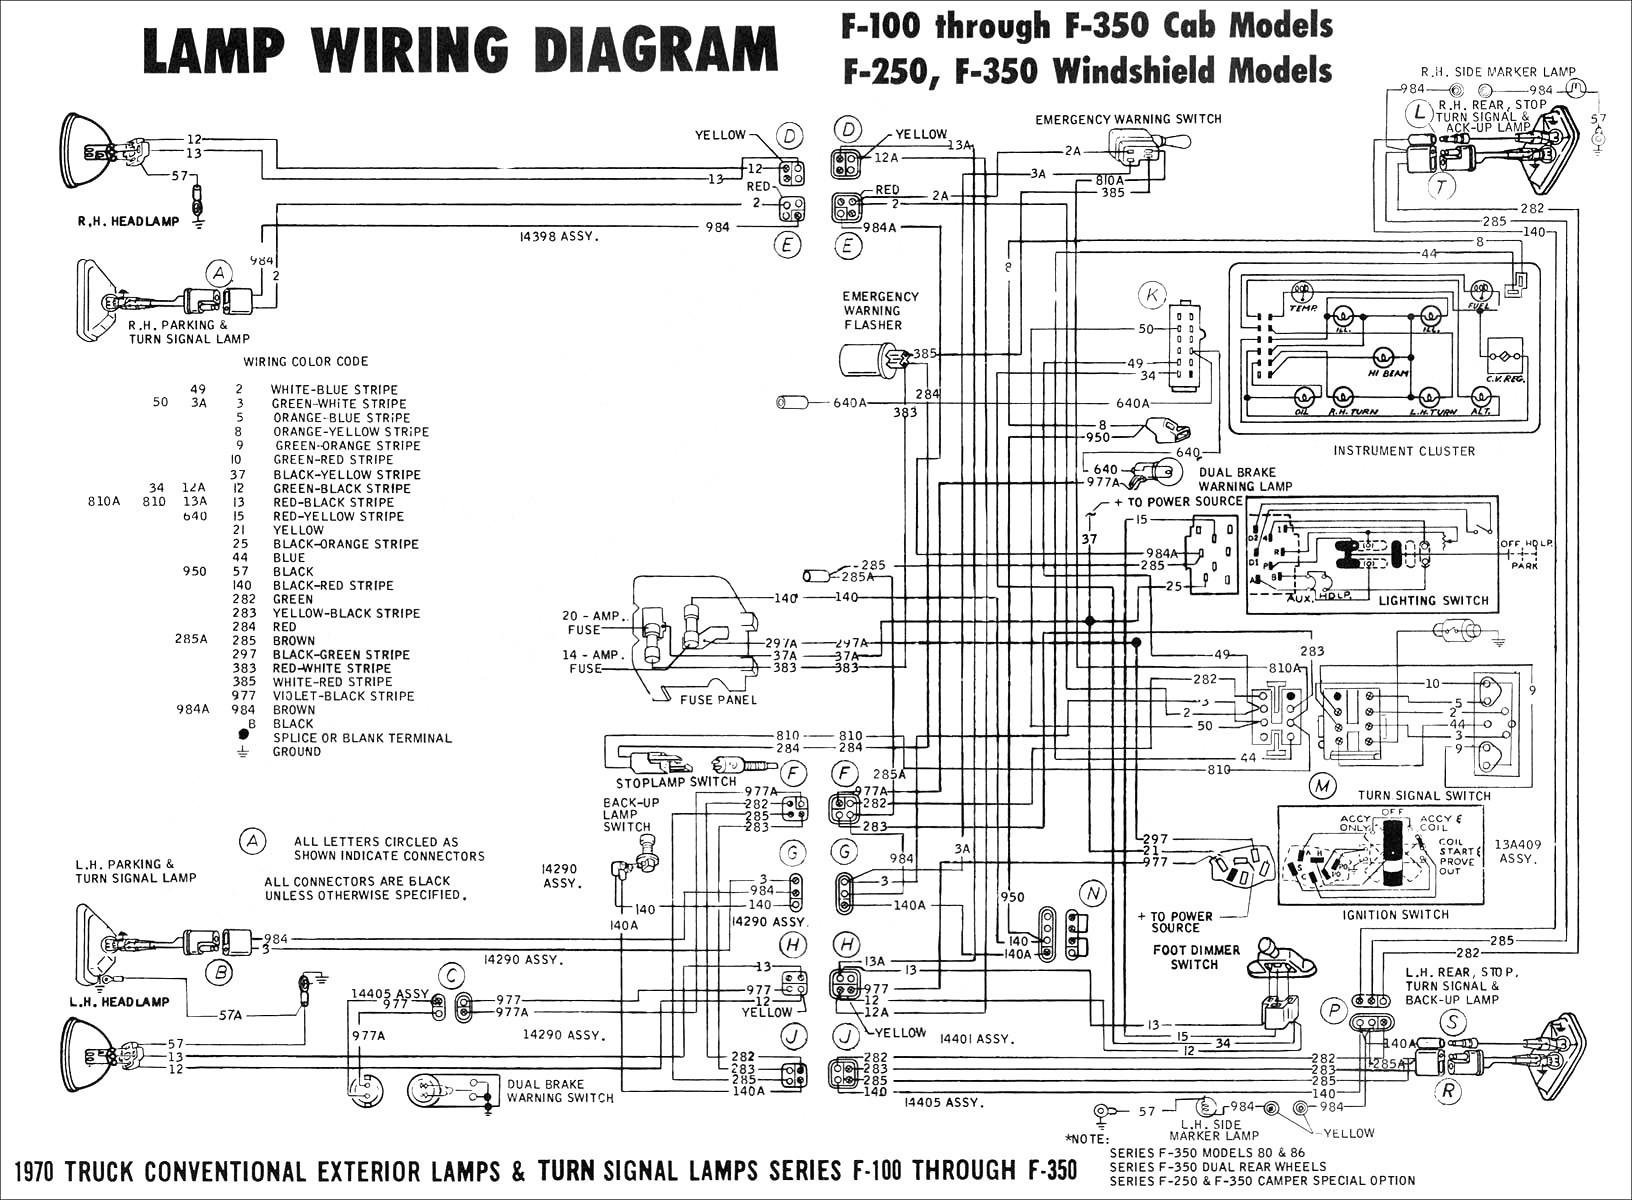 Audi A4 Starter Relay Location Diagram Likewise 4 Post Solenoid Wiring On Double 1999 Plete Diagrams U2022 Rh 207 246 78 188